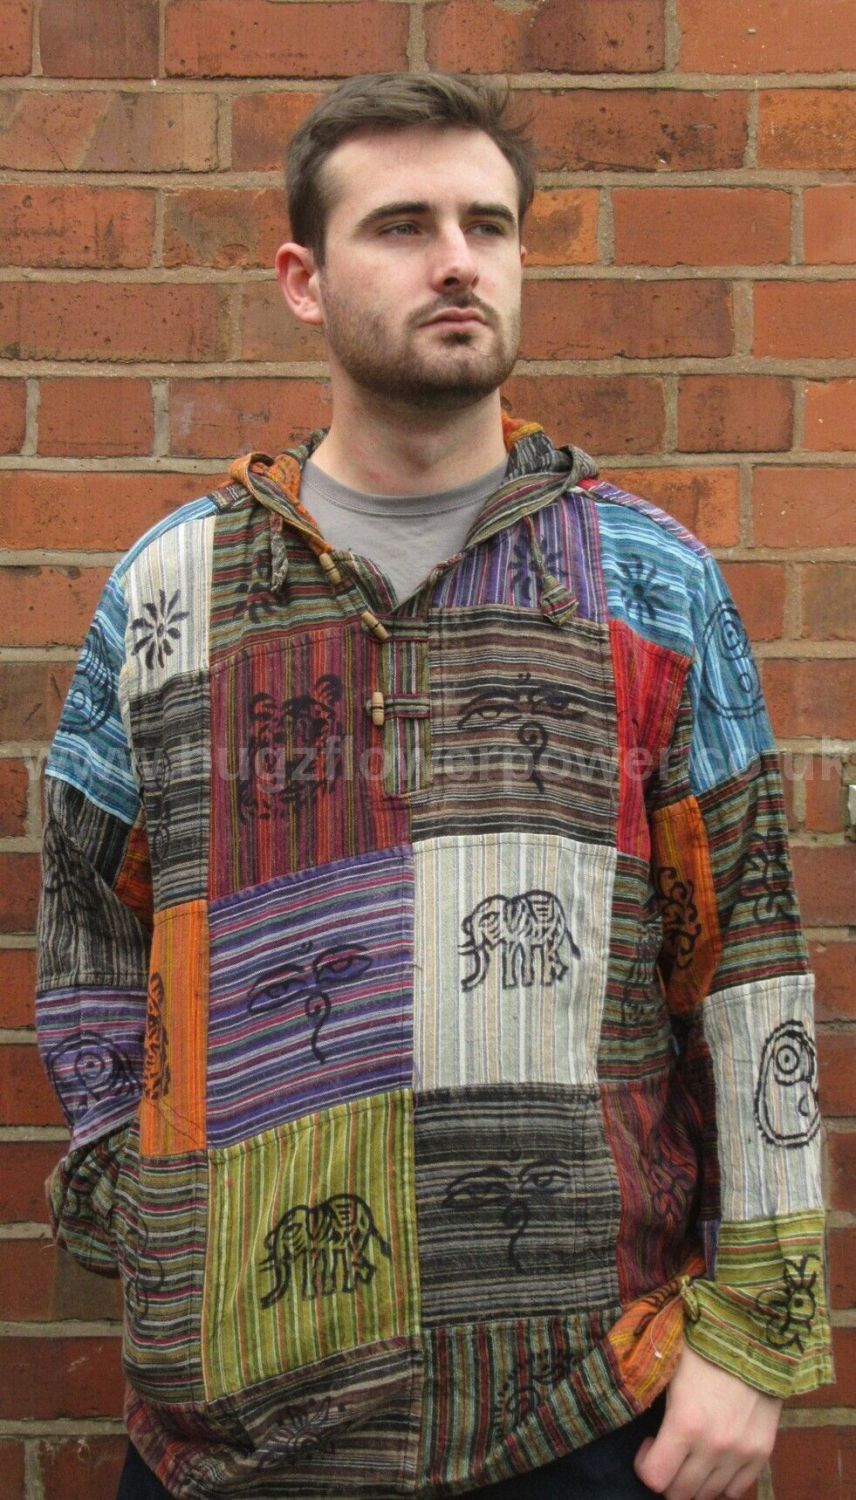 Unisex printed patchwork hooded shirt